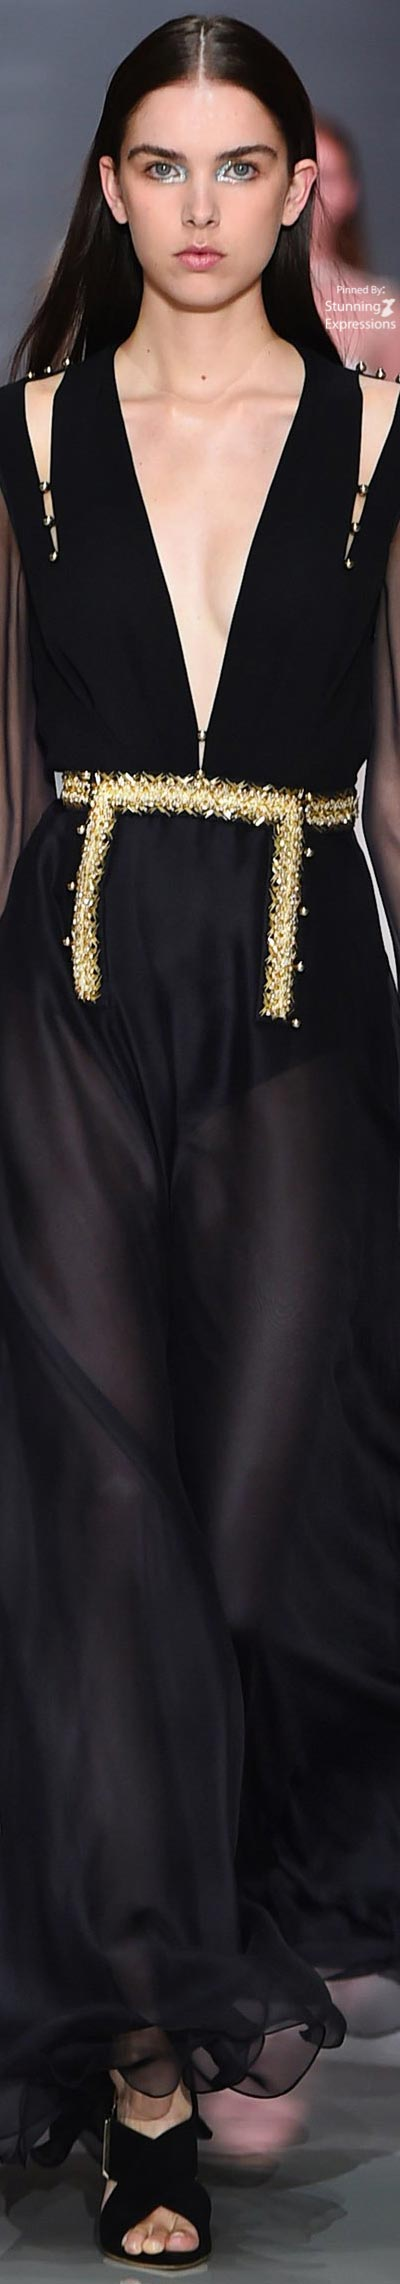 Ralph and russo spring color blackgold pinterest